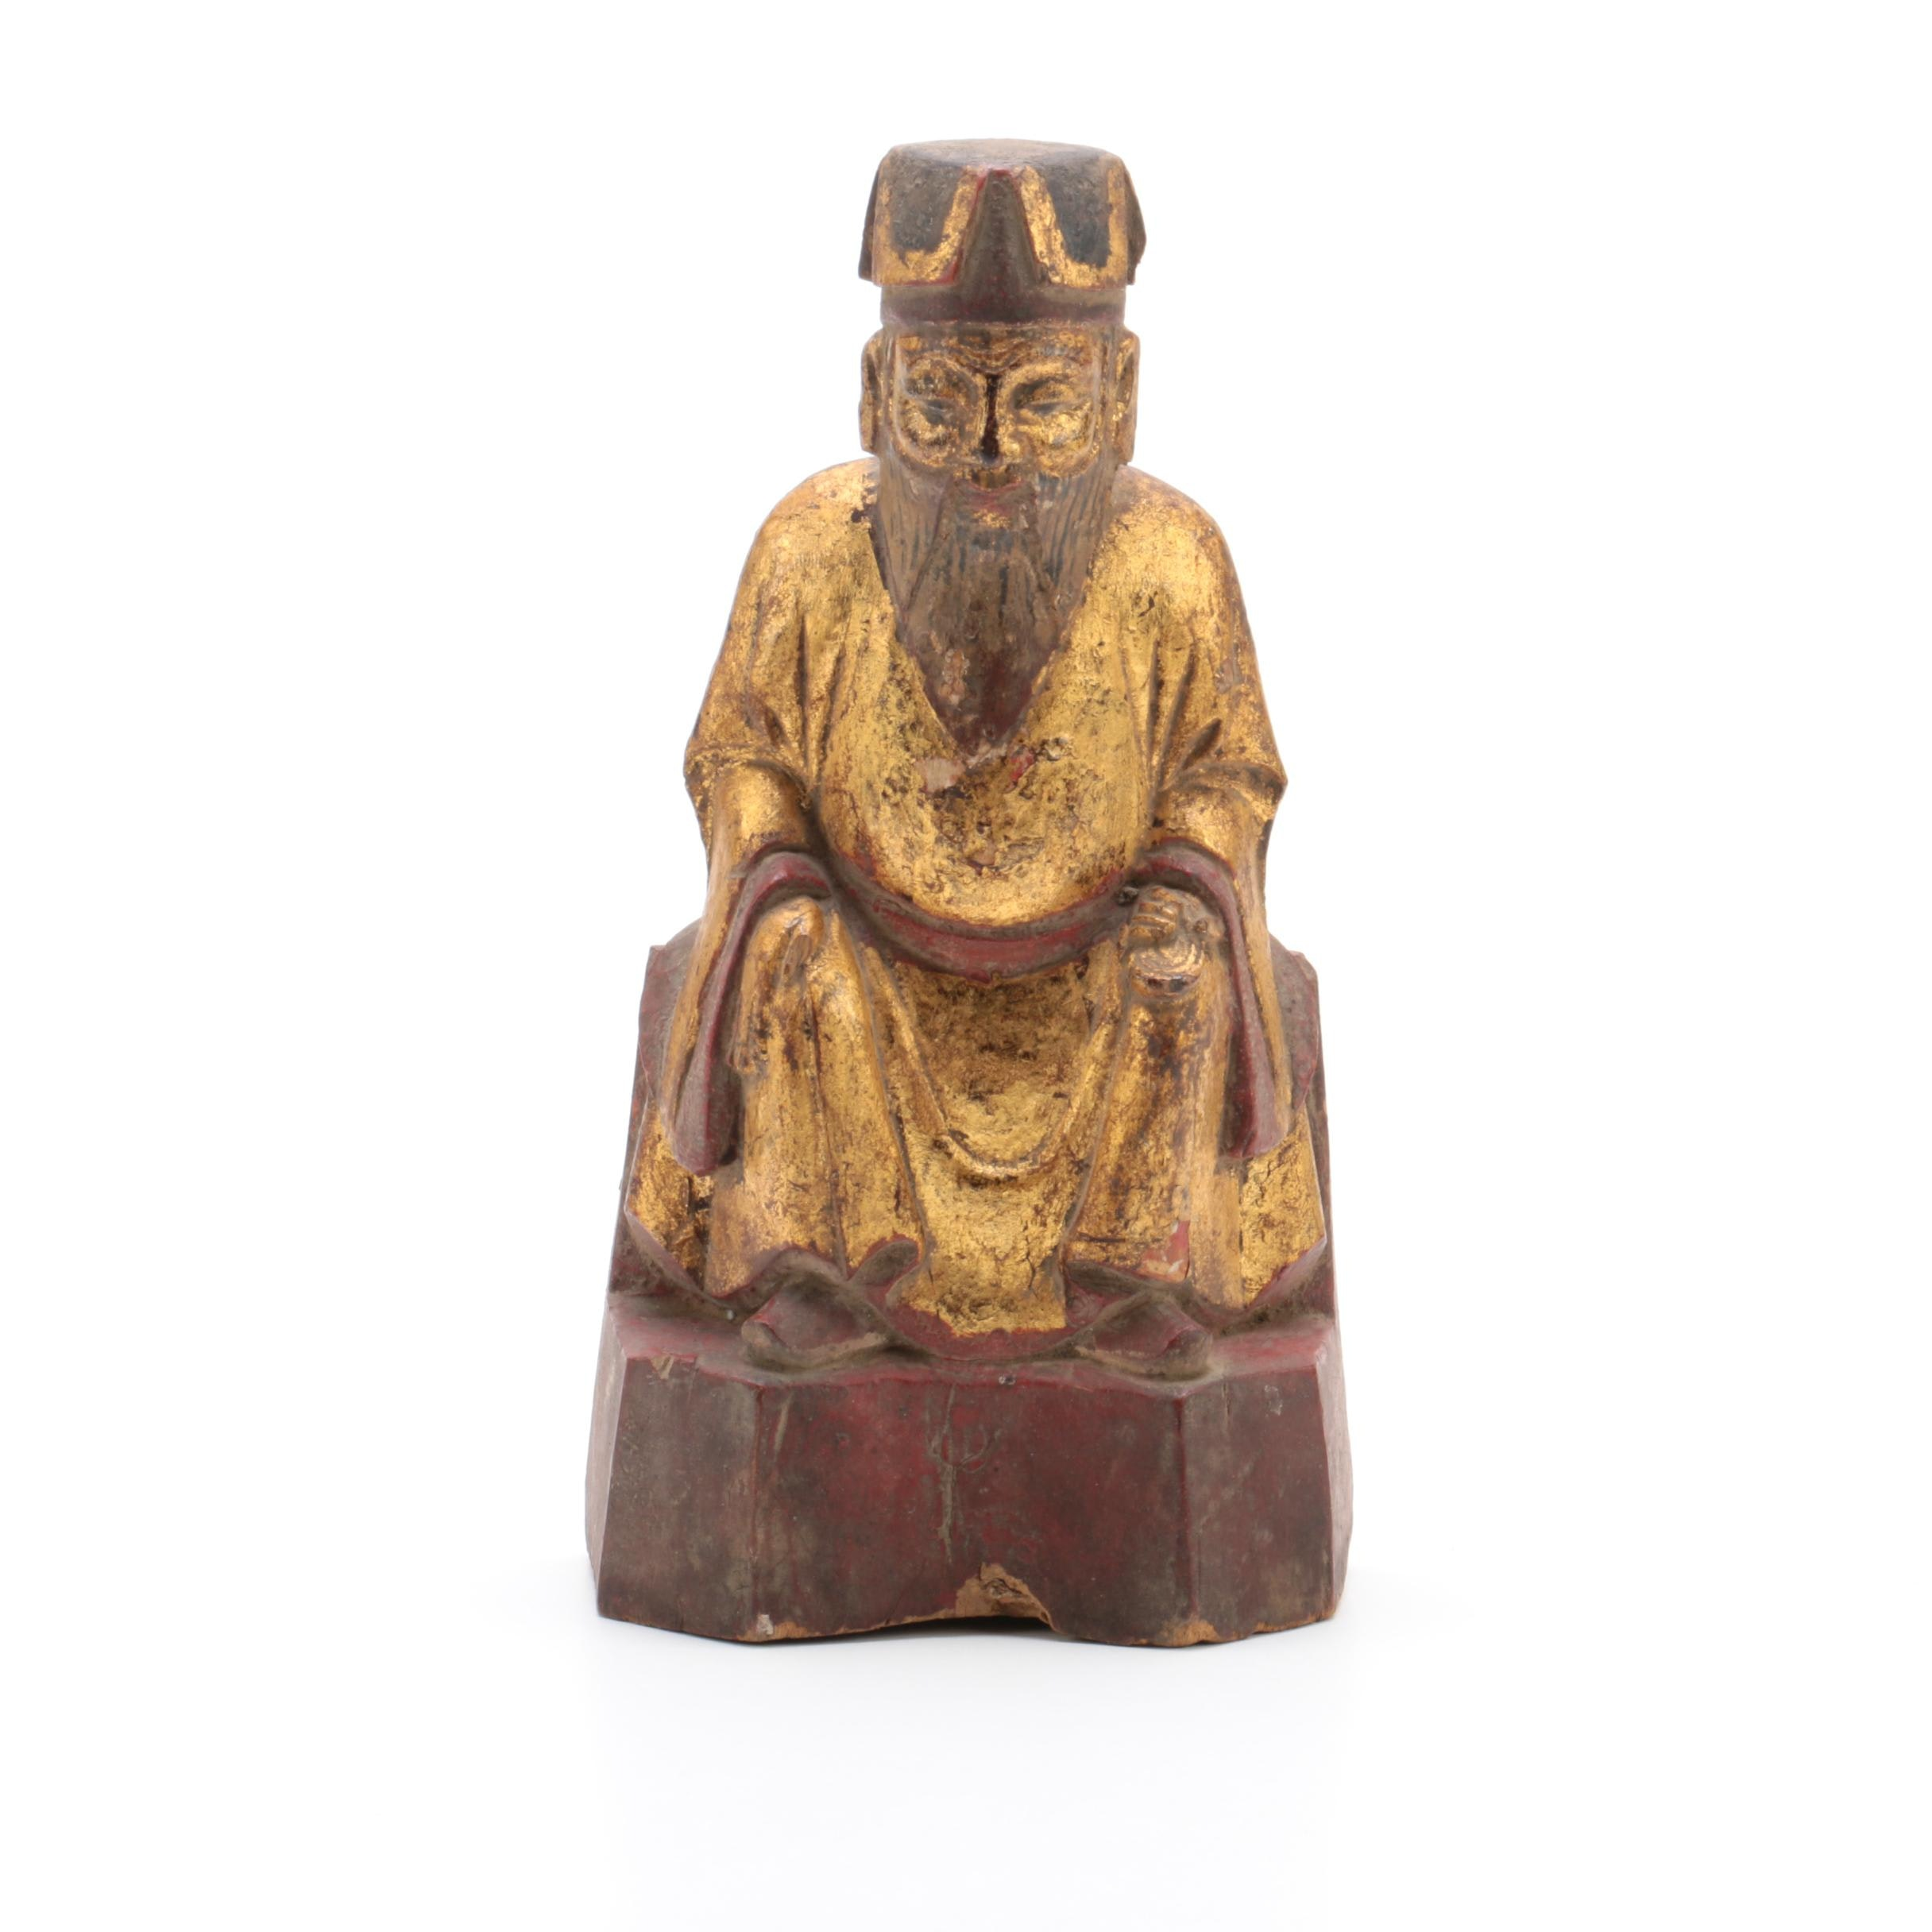 Carved Wood Seated Chinese Scholar-Official with Gilt Robes